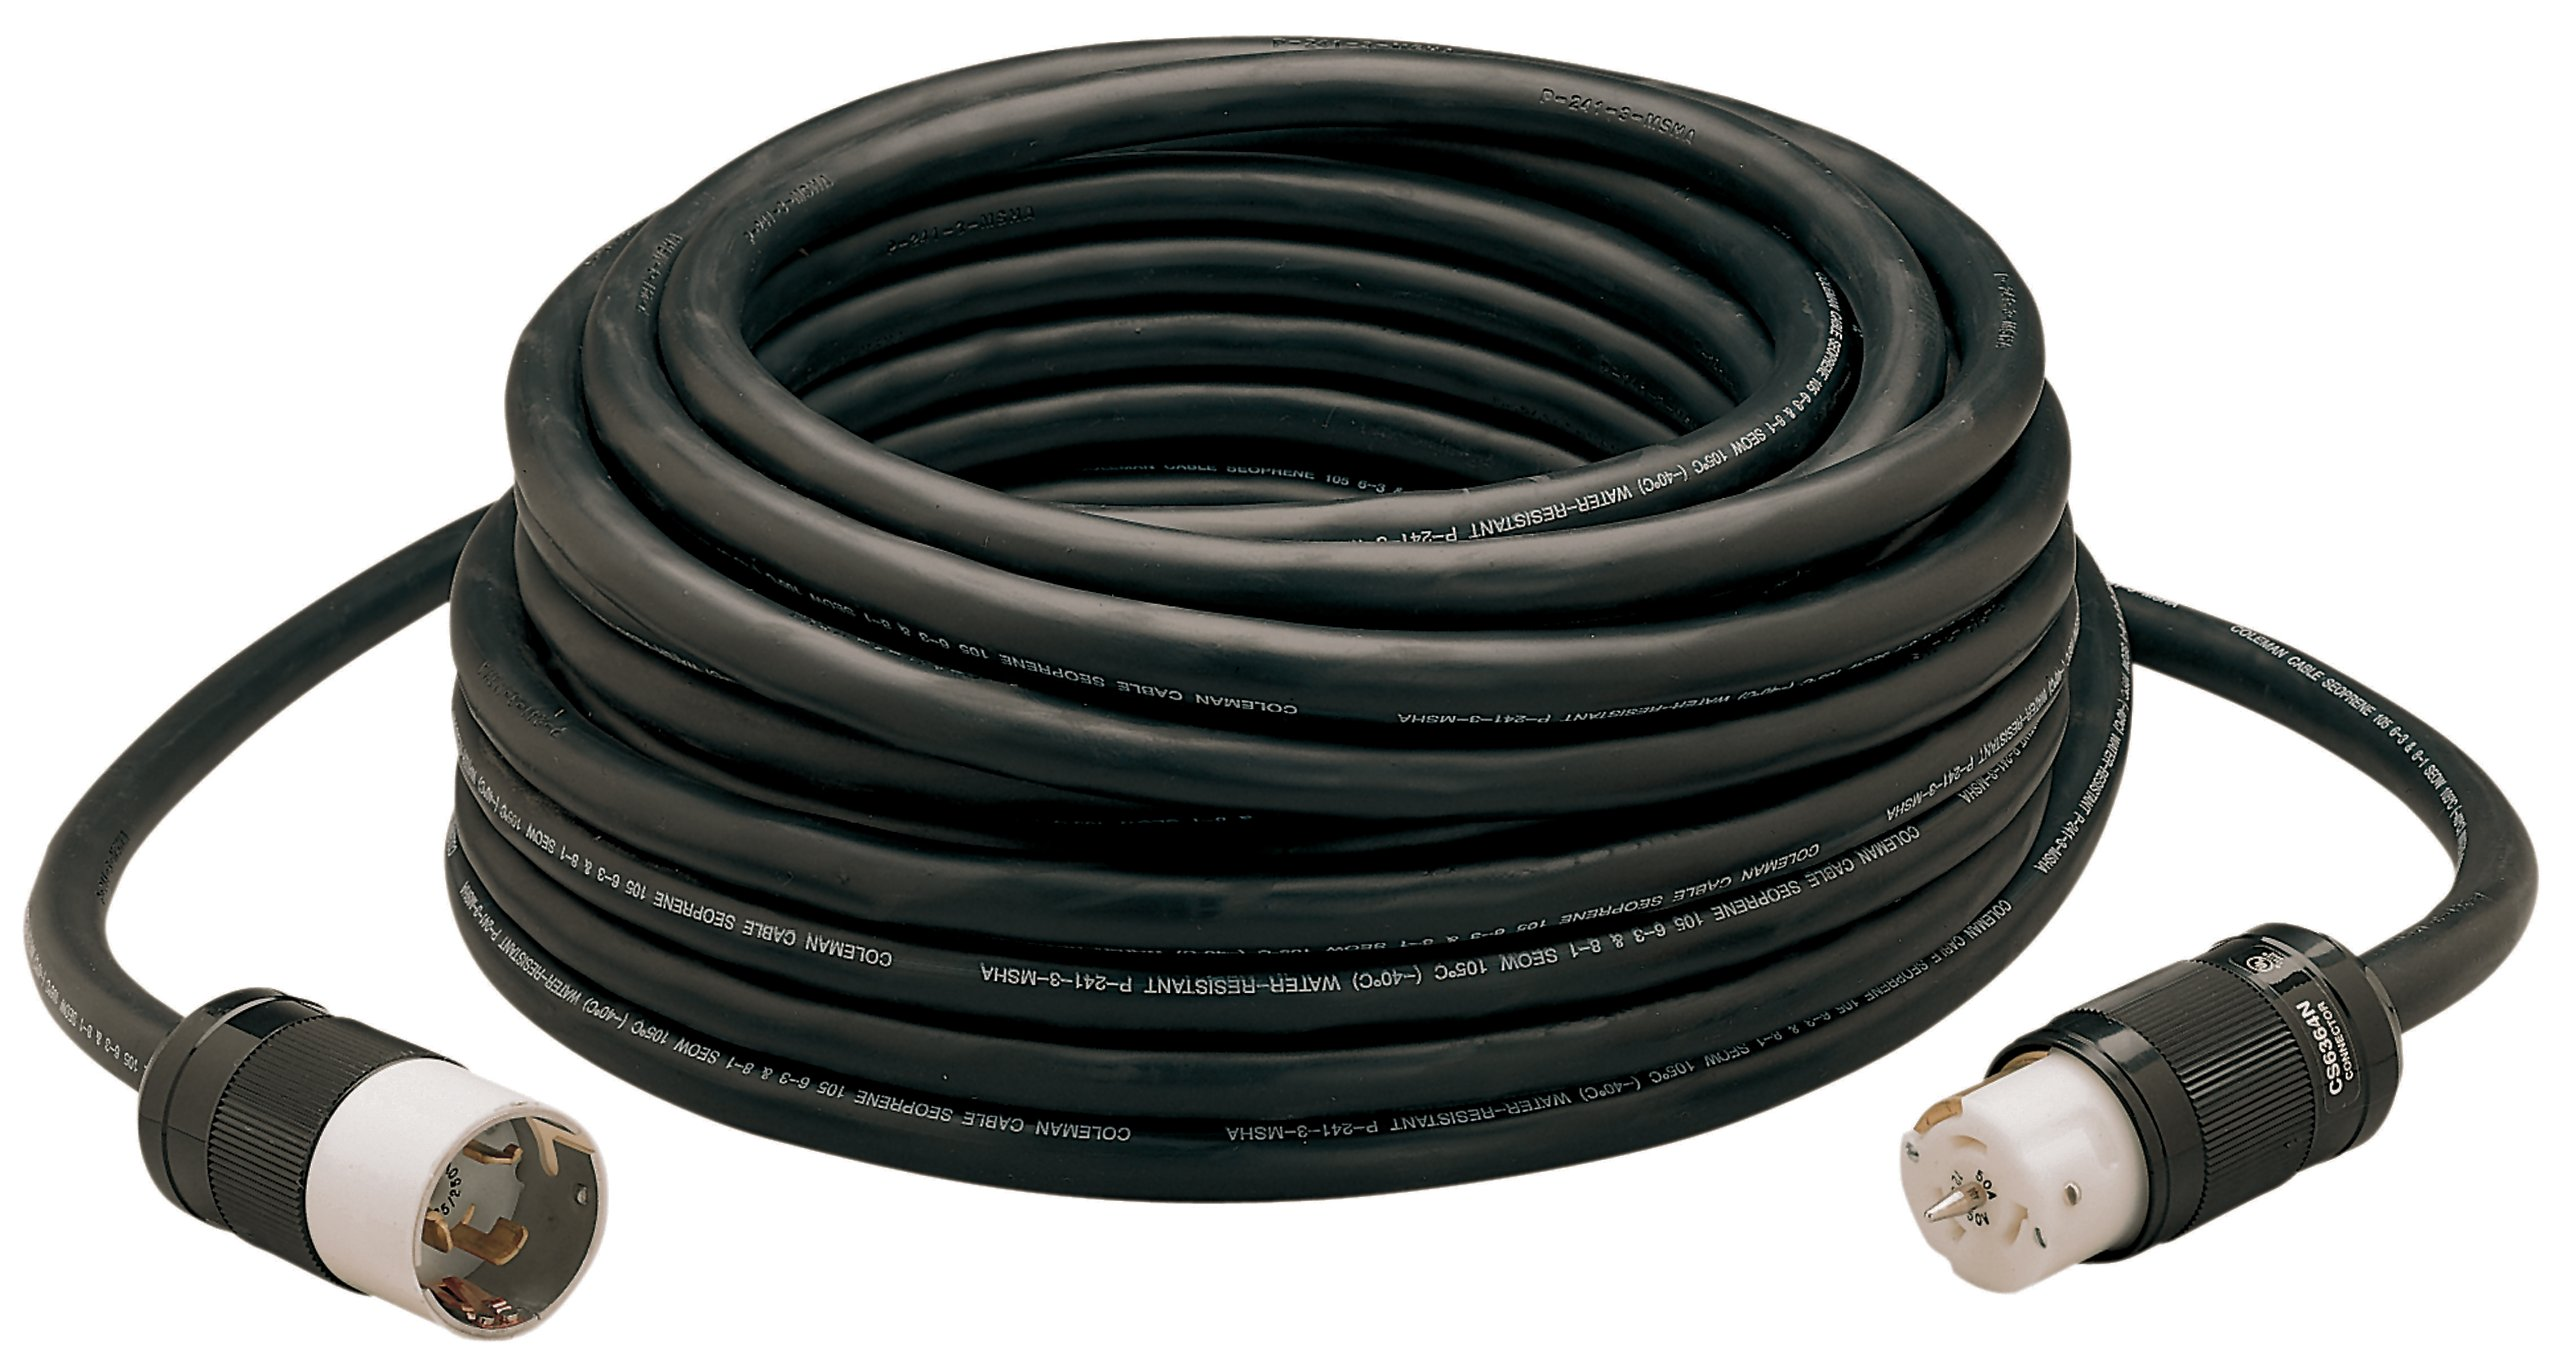 Coleman Cable 01919 50-Amp Twist-Lock Generator Power Extension Cord, 6/3 & 8/1 SEOW Black, 100-Foot by Coleman Cable